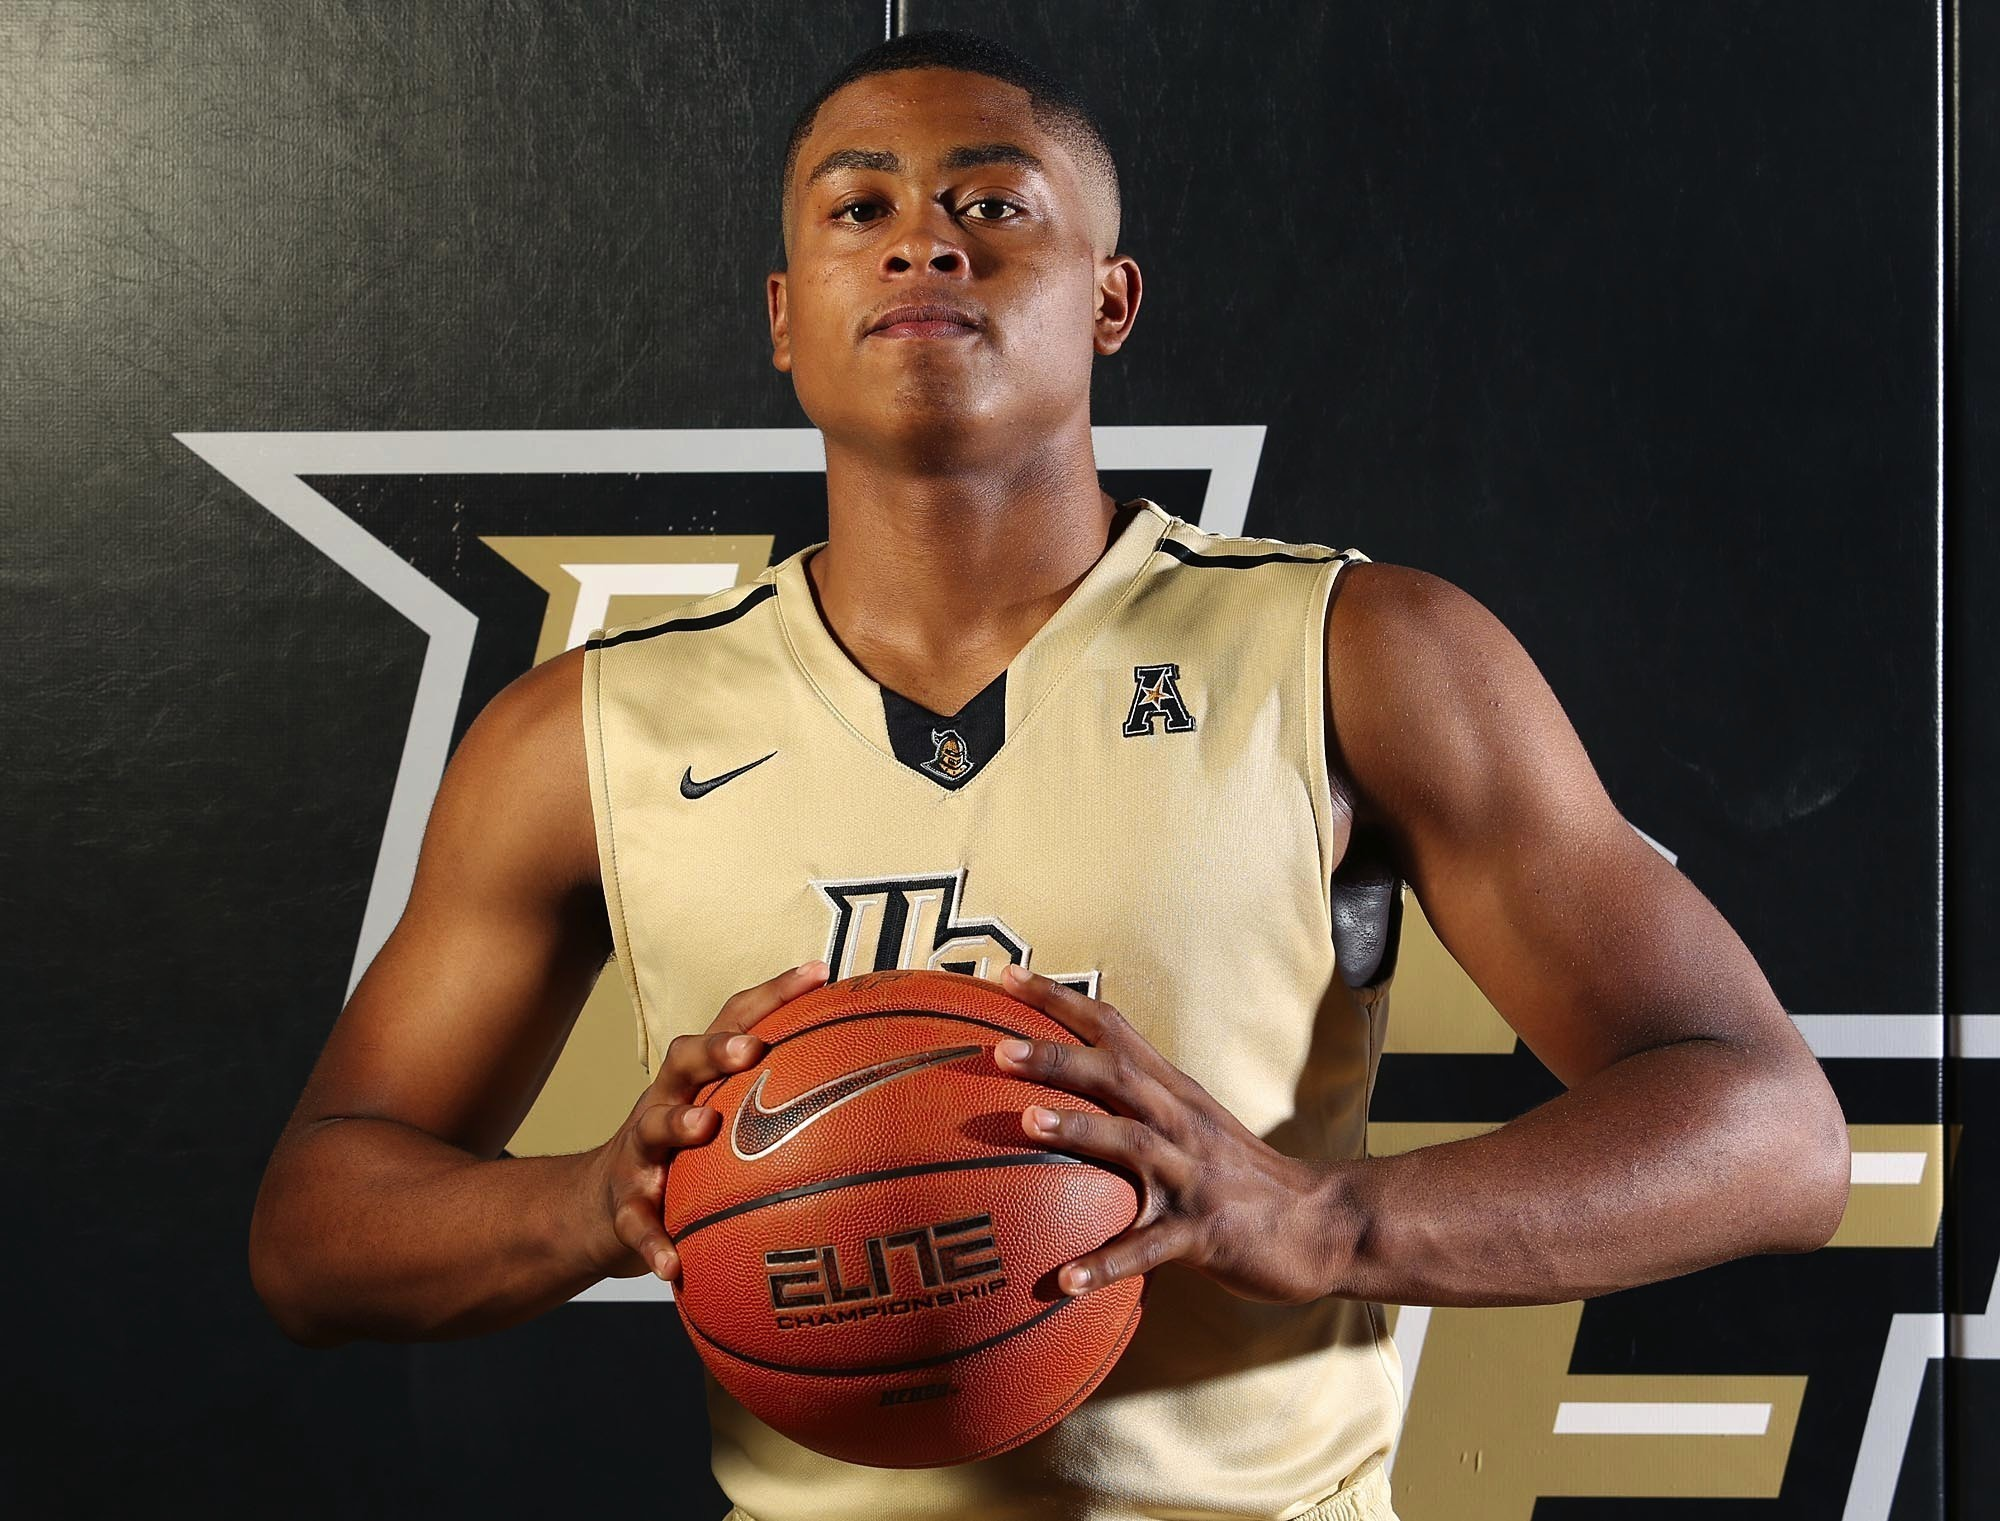 UCF basketball will sit guard B.J. Taylor against SMU ...